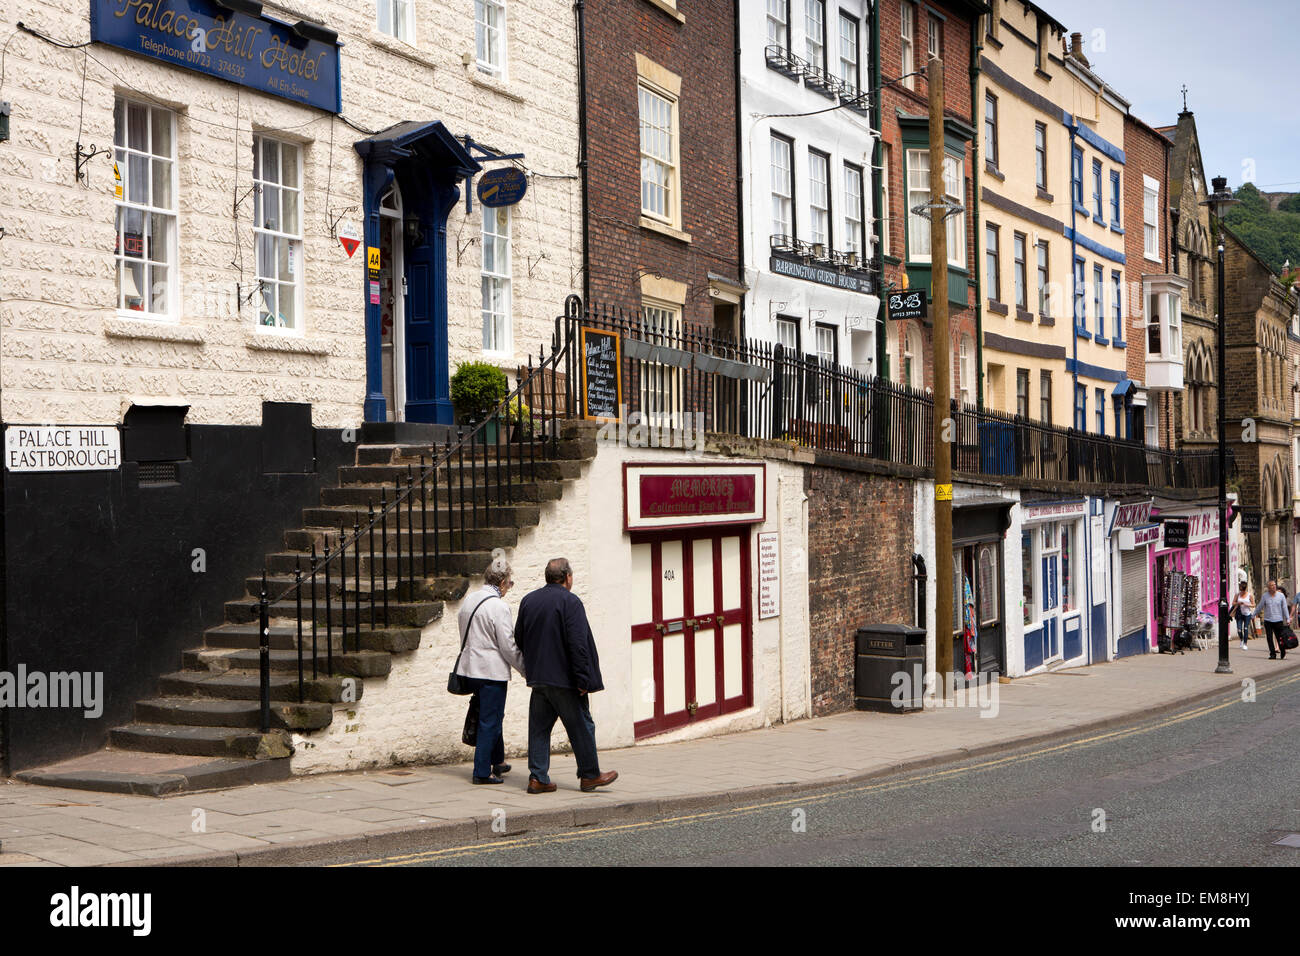 UK, England, Yorkshire, Scarborough, Eastborough, Palace Hill, high level pavement above small specialist shops - Stock Image